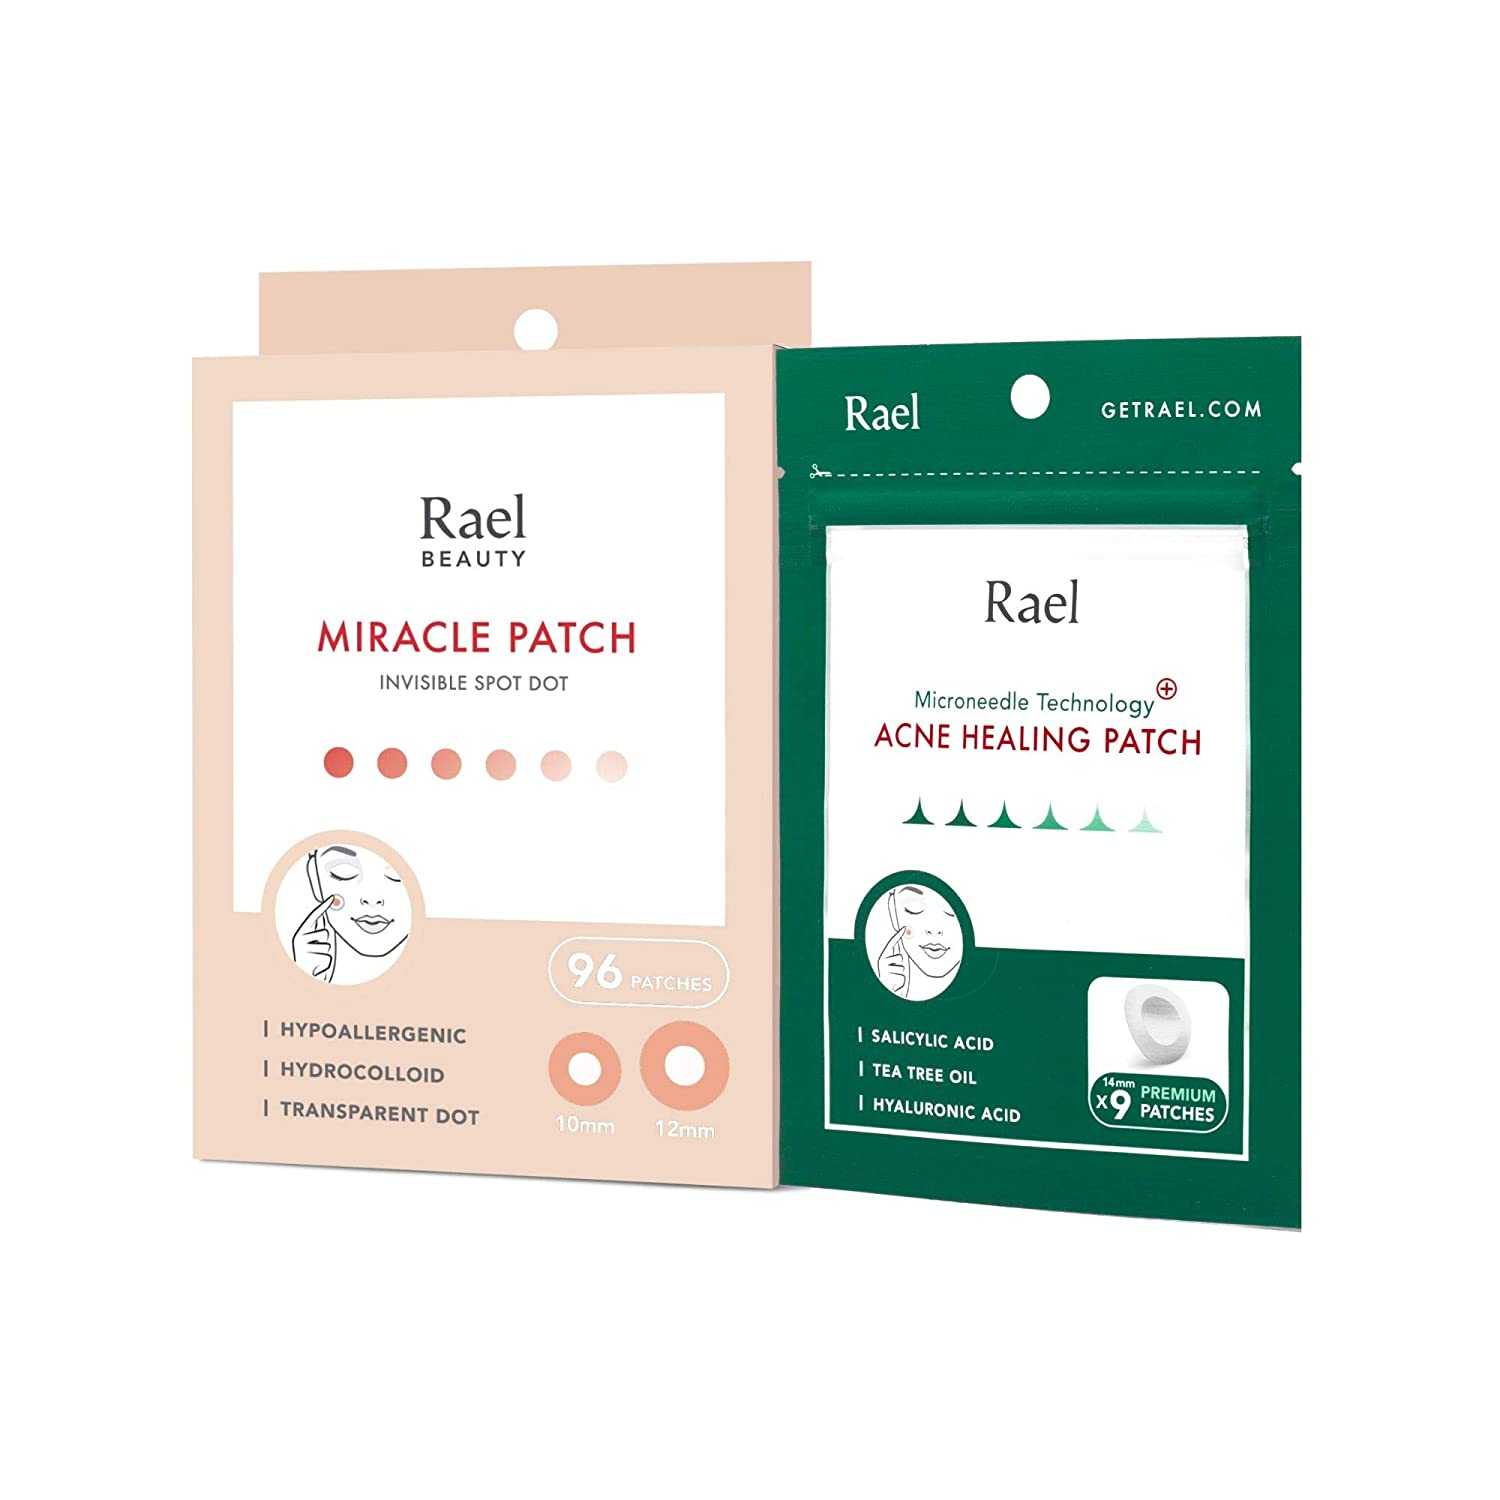 Rael Acne Pimple Healing Patch (96 Count) & Microneedle Acne Healing Patch (9 Count) Bundle